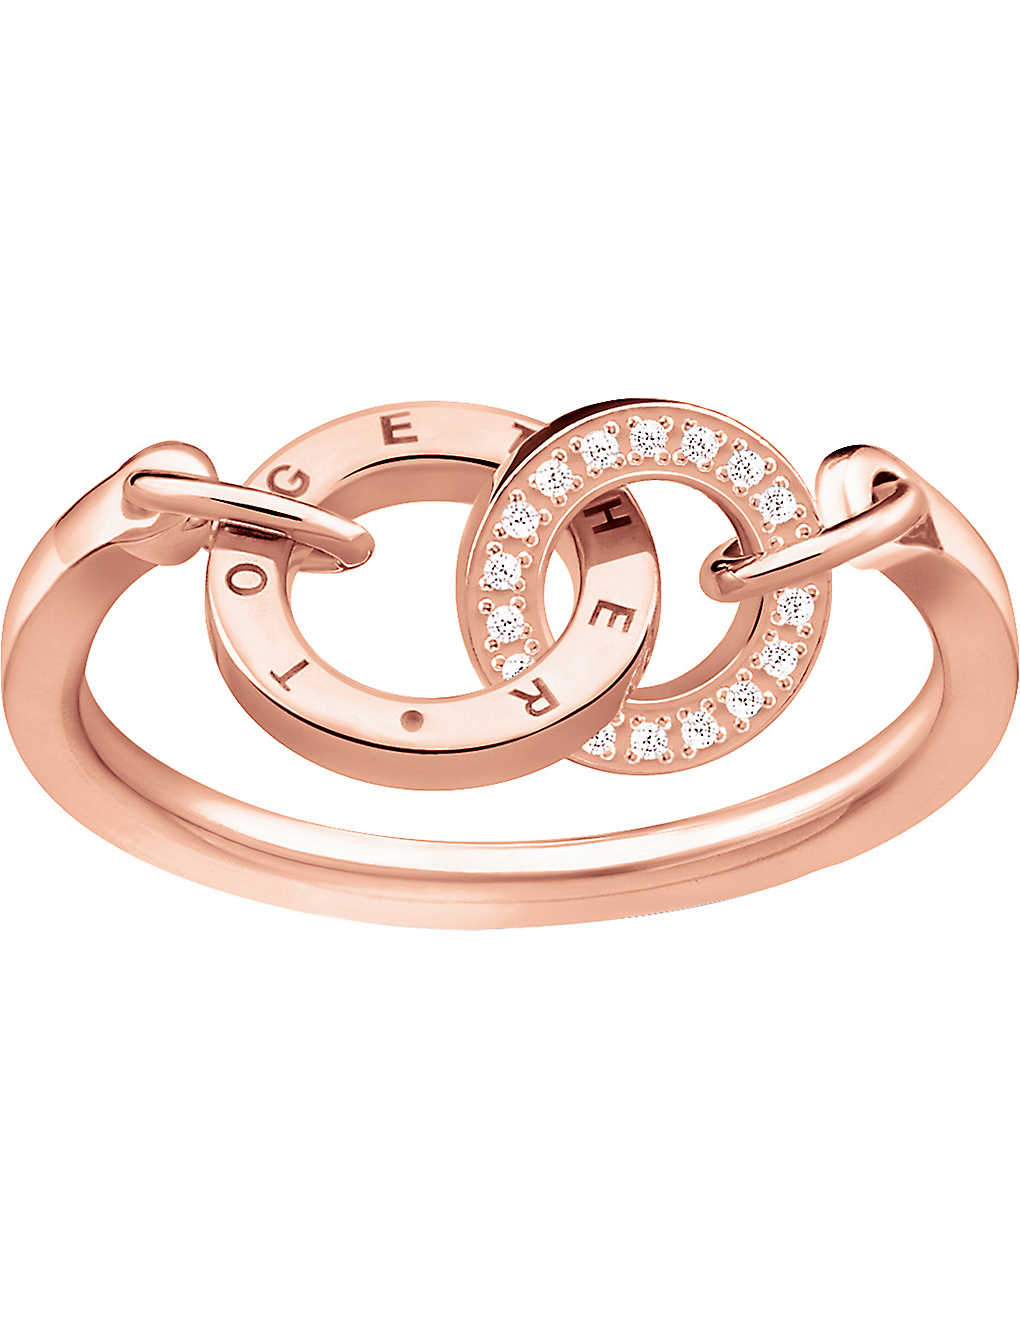 20acc9f36 THOMAS SABO - Together Forever 18ct rose gold-plated ring ...